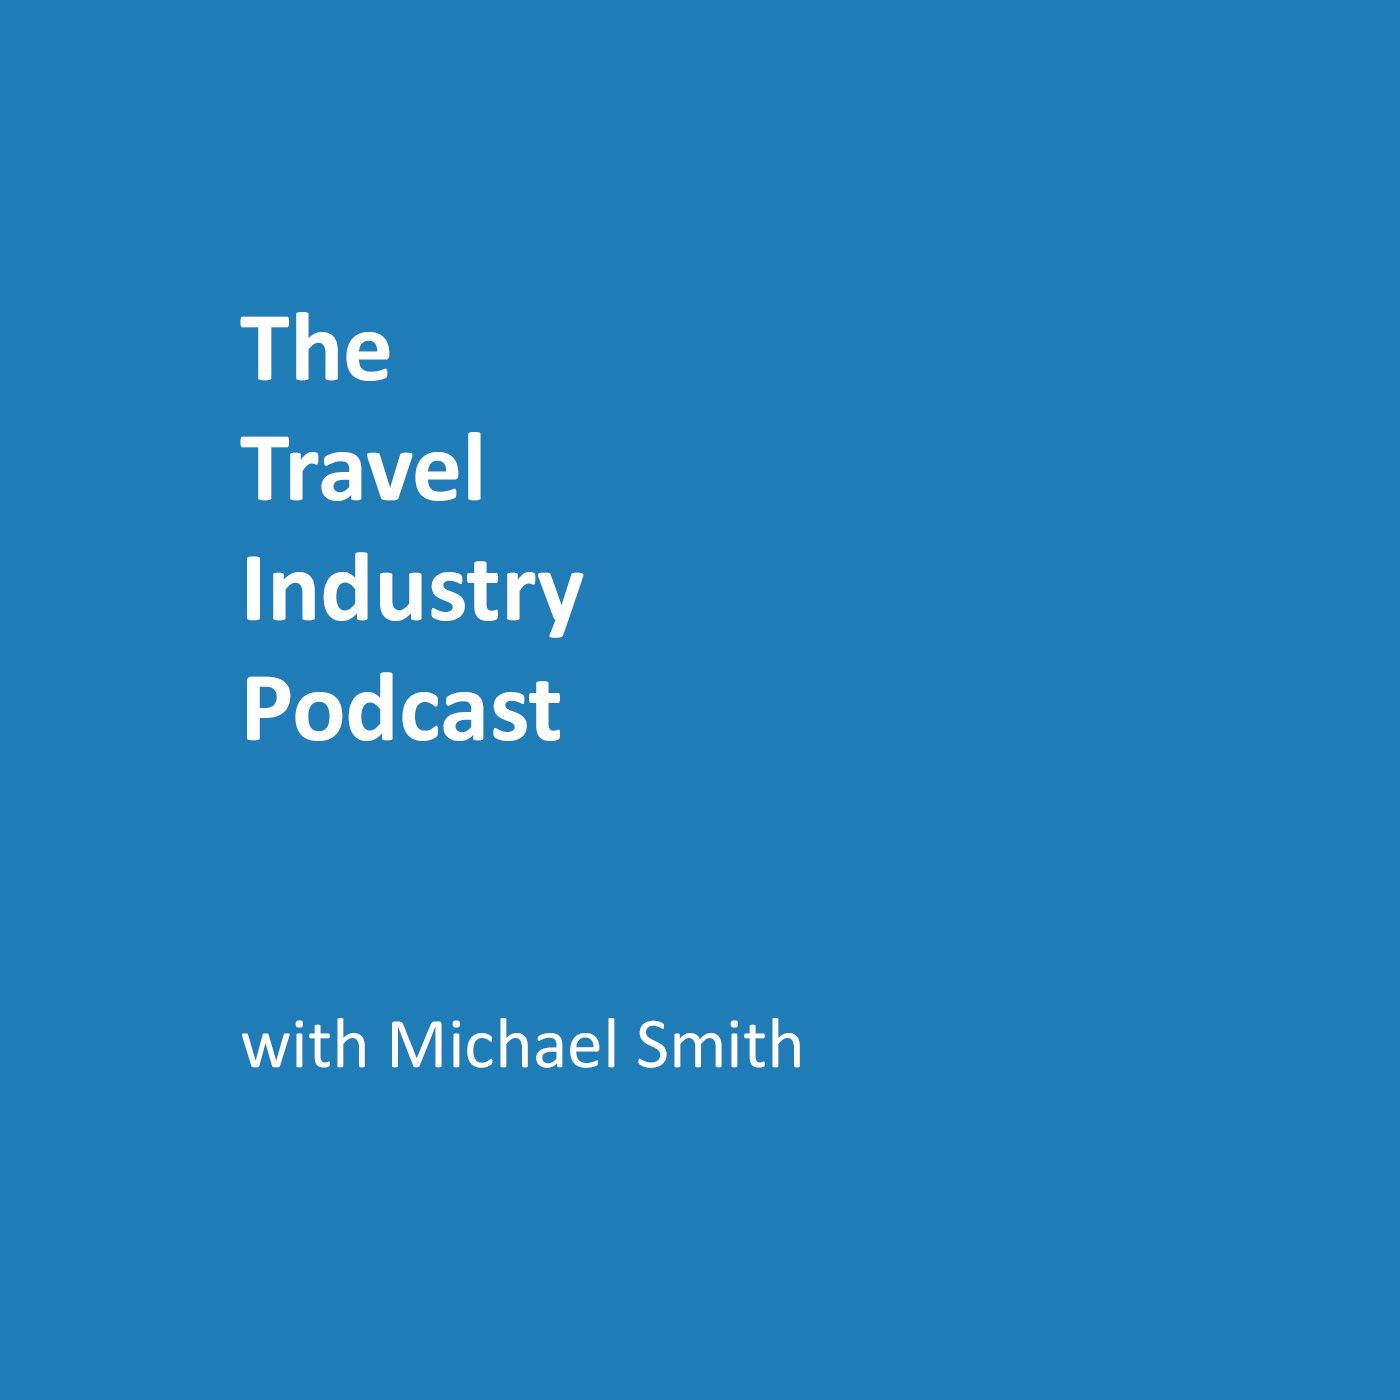 The Travel Industry Podcast